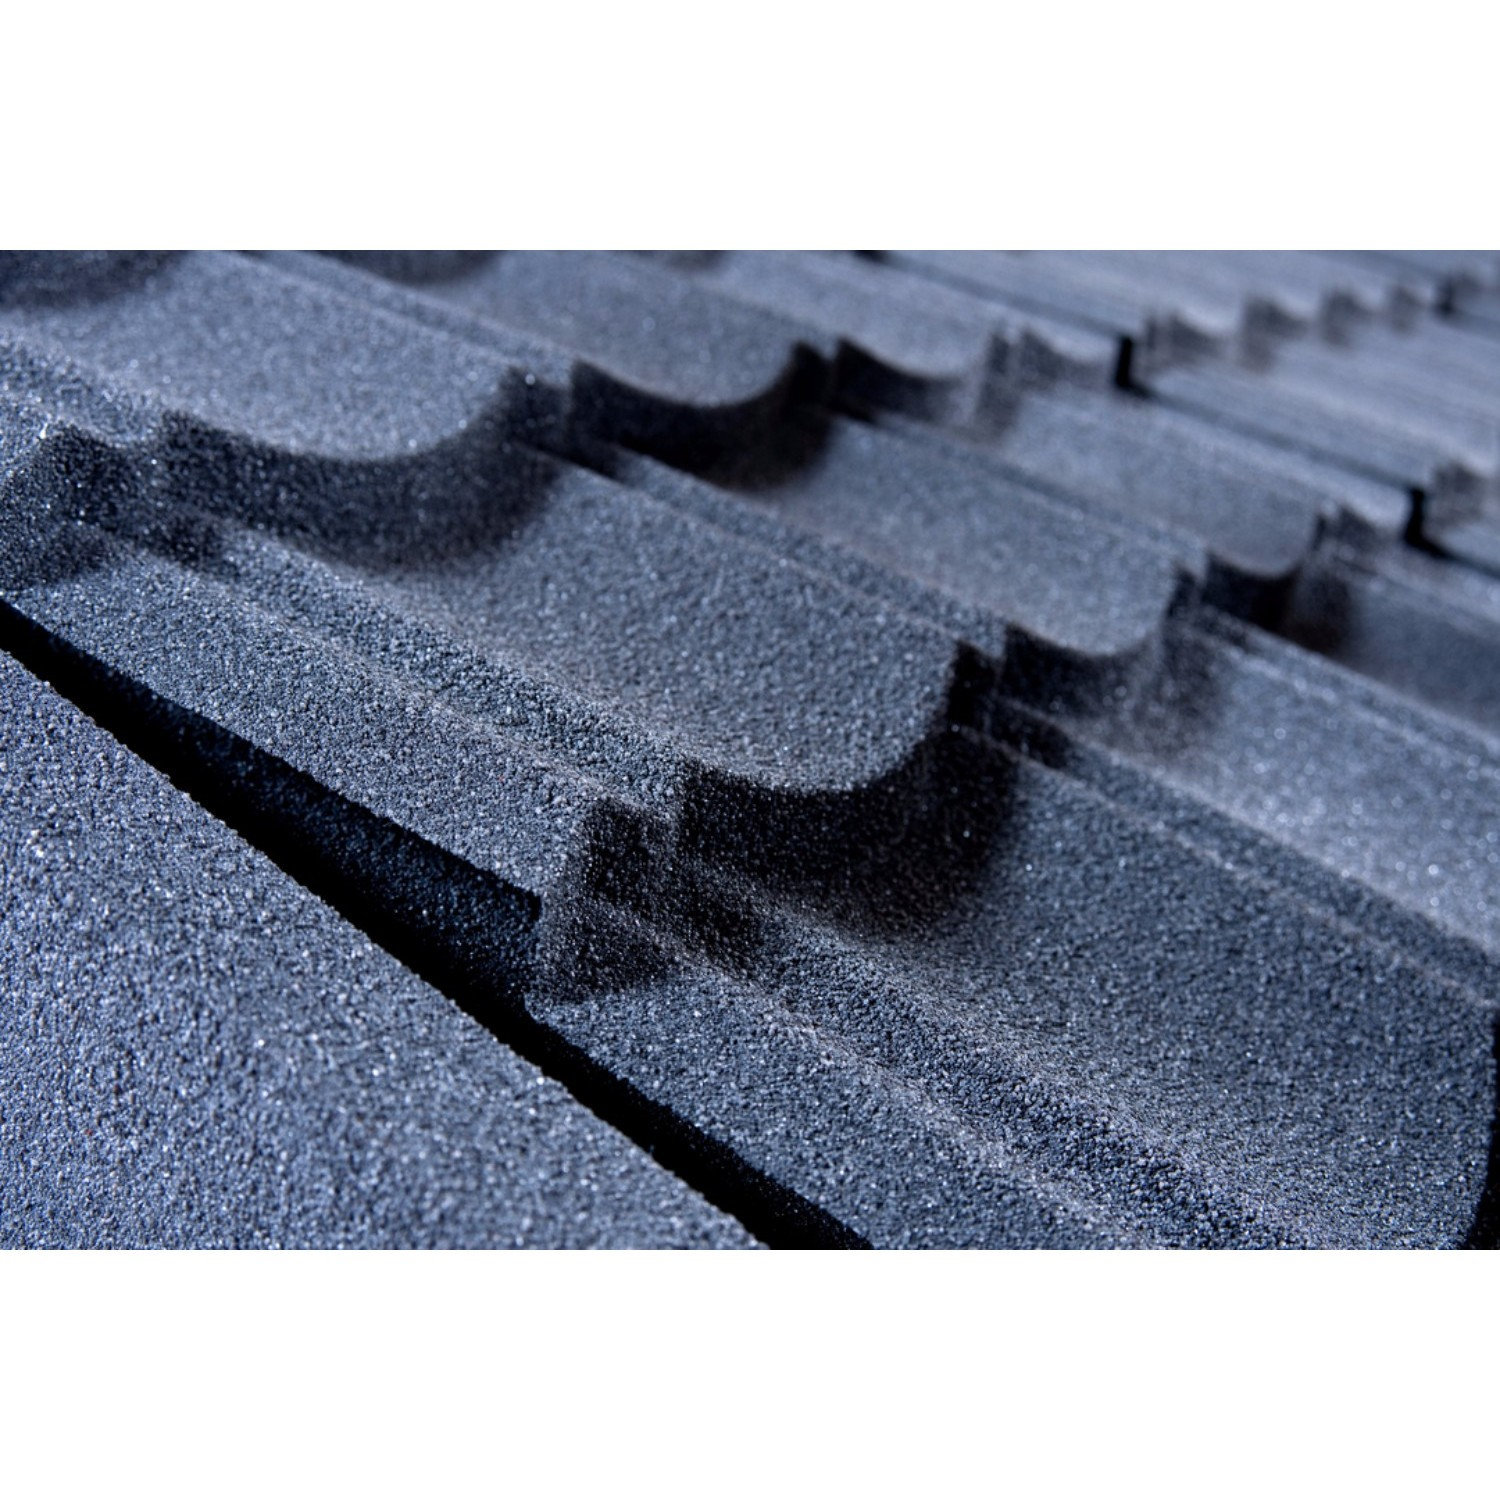 Corotile Lightweight Metal Roofing Sheet - Charcoal (1140mm